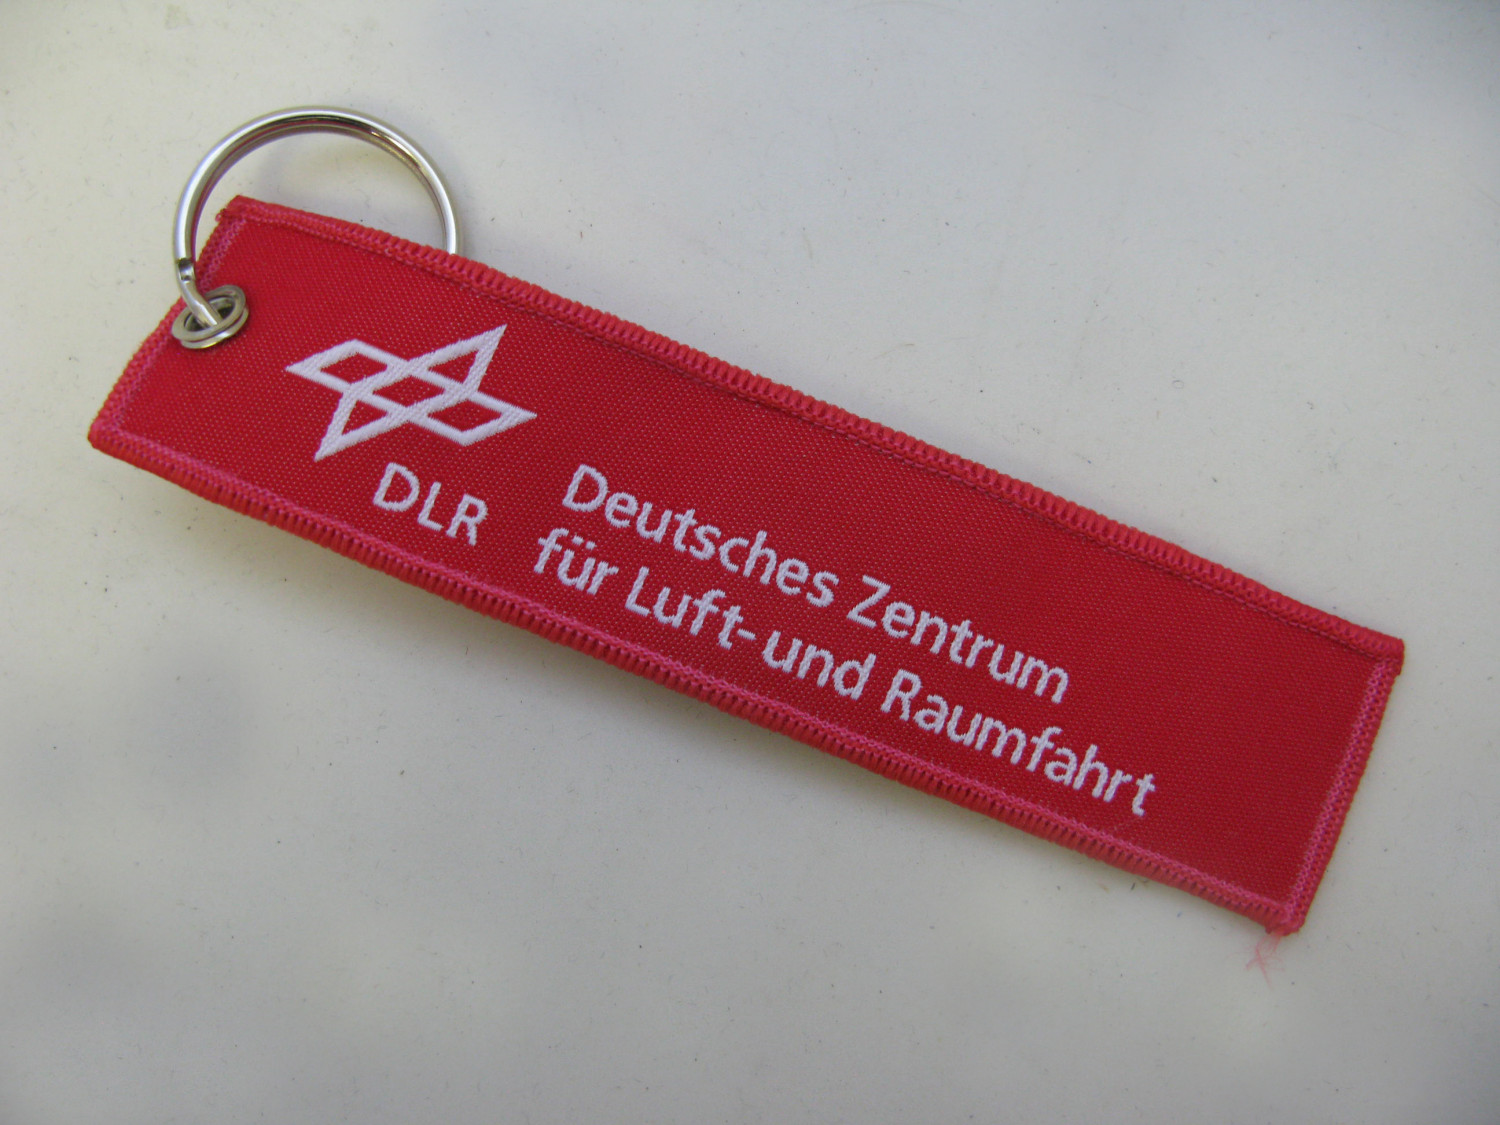 Key Ring from German Aerospace Centre (DLR)